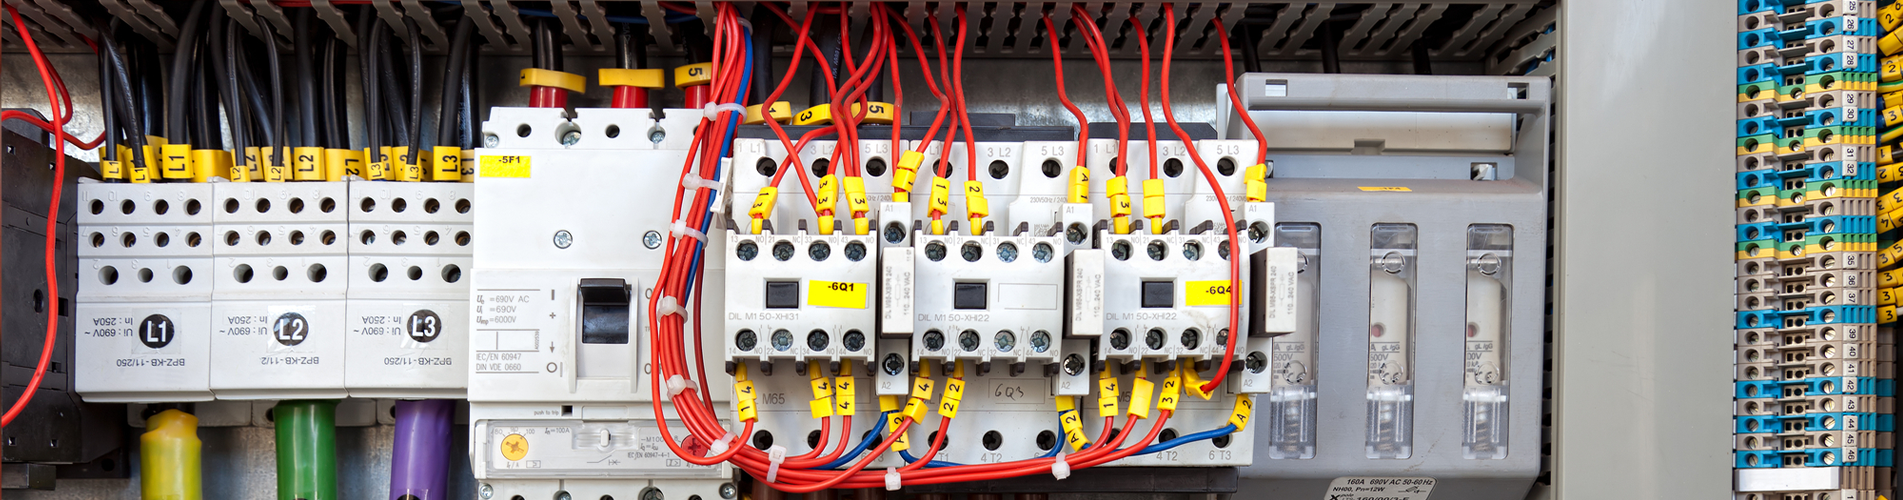 Commercial Electrical Control Panel